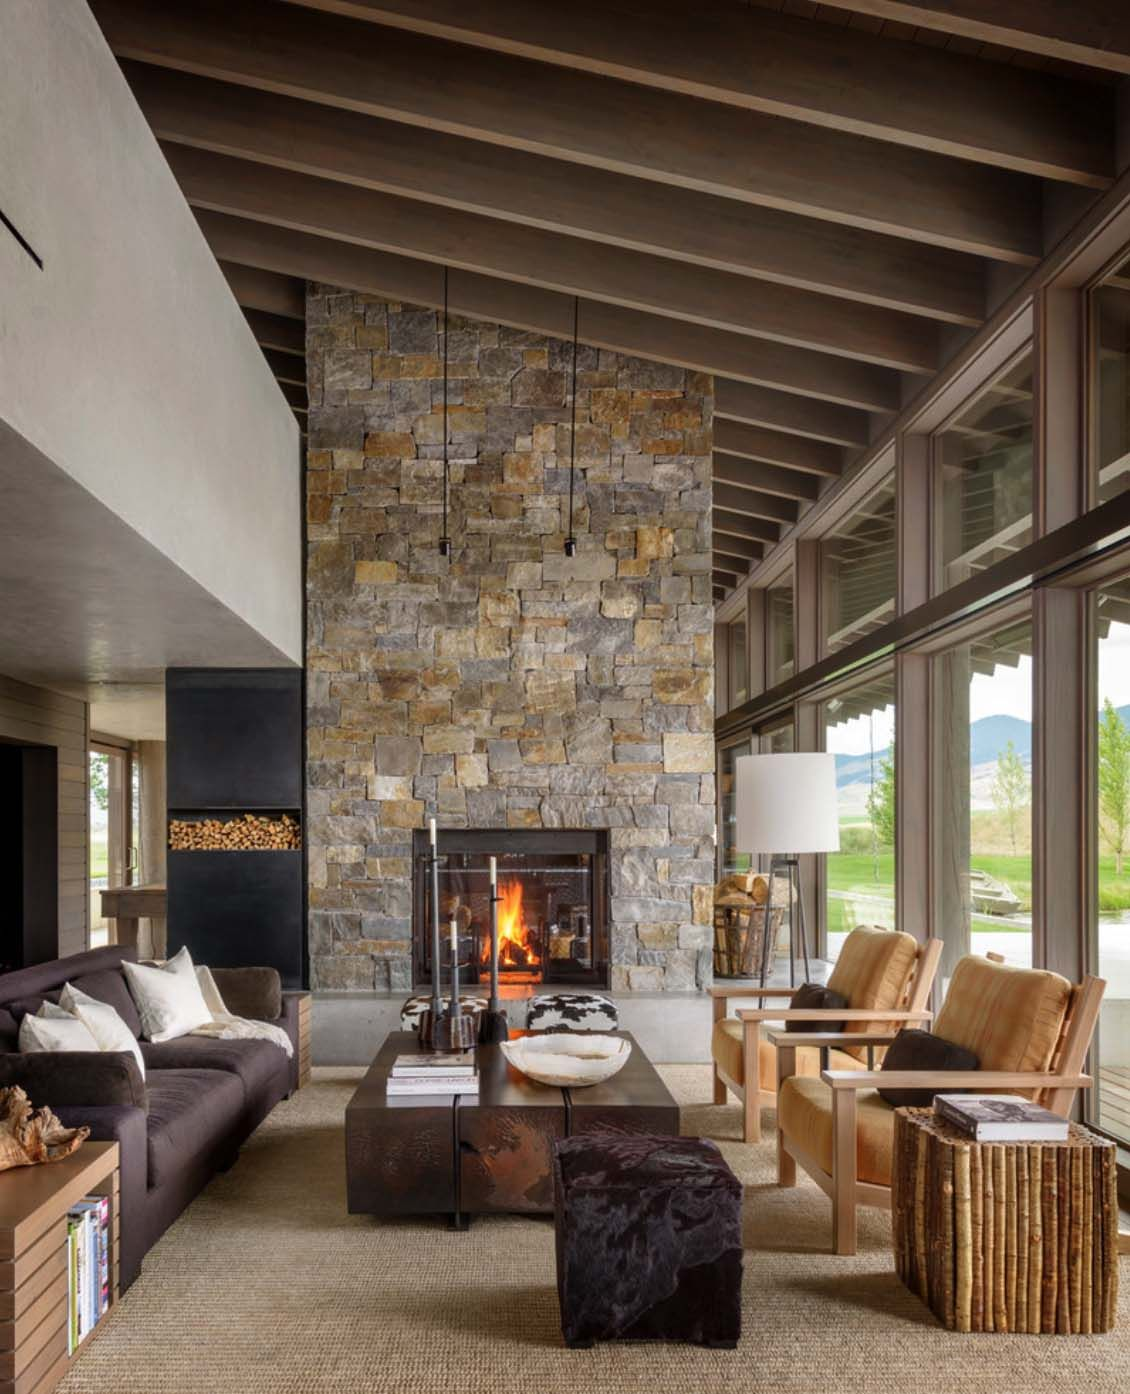 15 Rustic Home Decor Ideas for Your Living Room | Modern ...